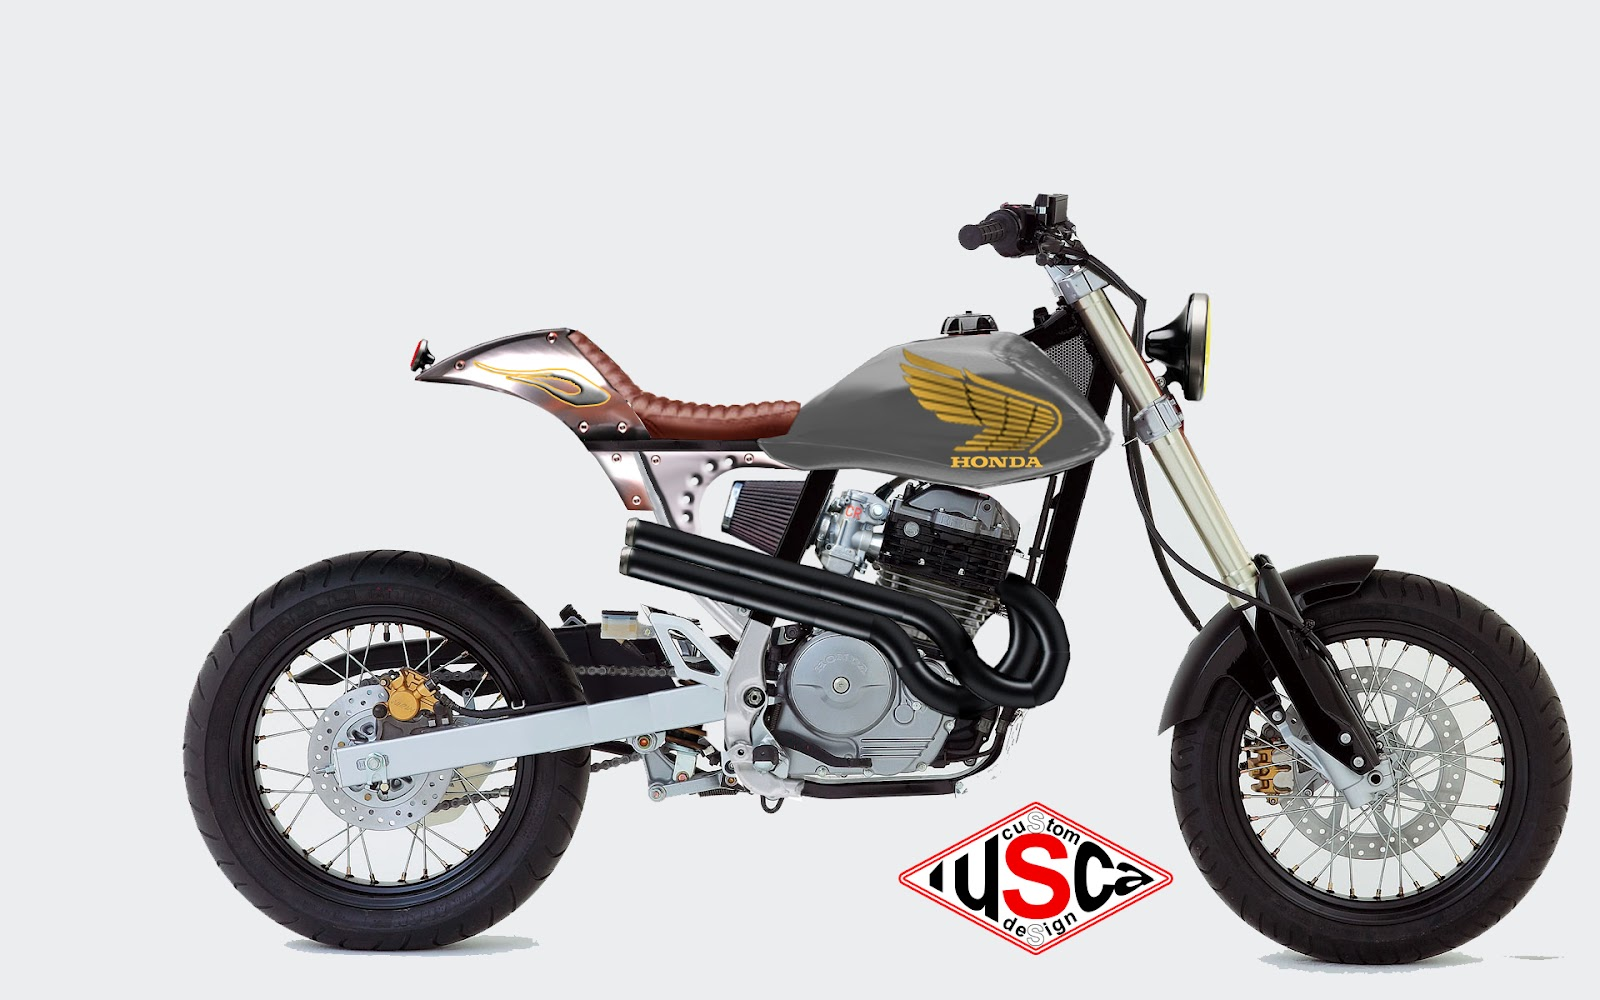 lusca custom design honda fmx 650 drift. Black Bedroom Furniture Sets. Home Design Ideas